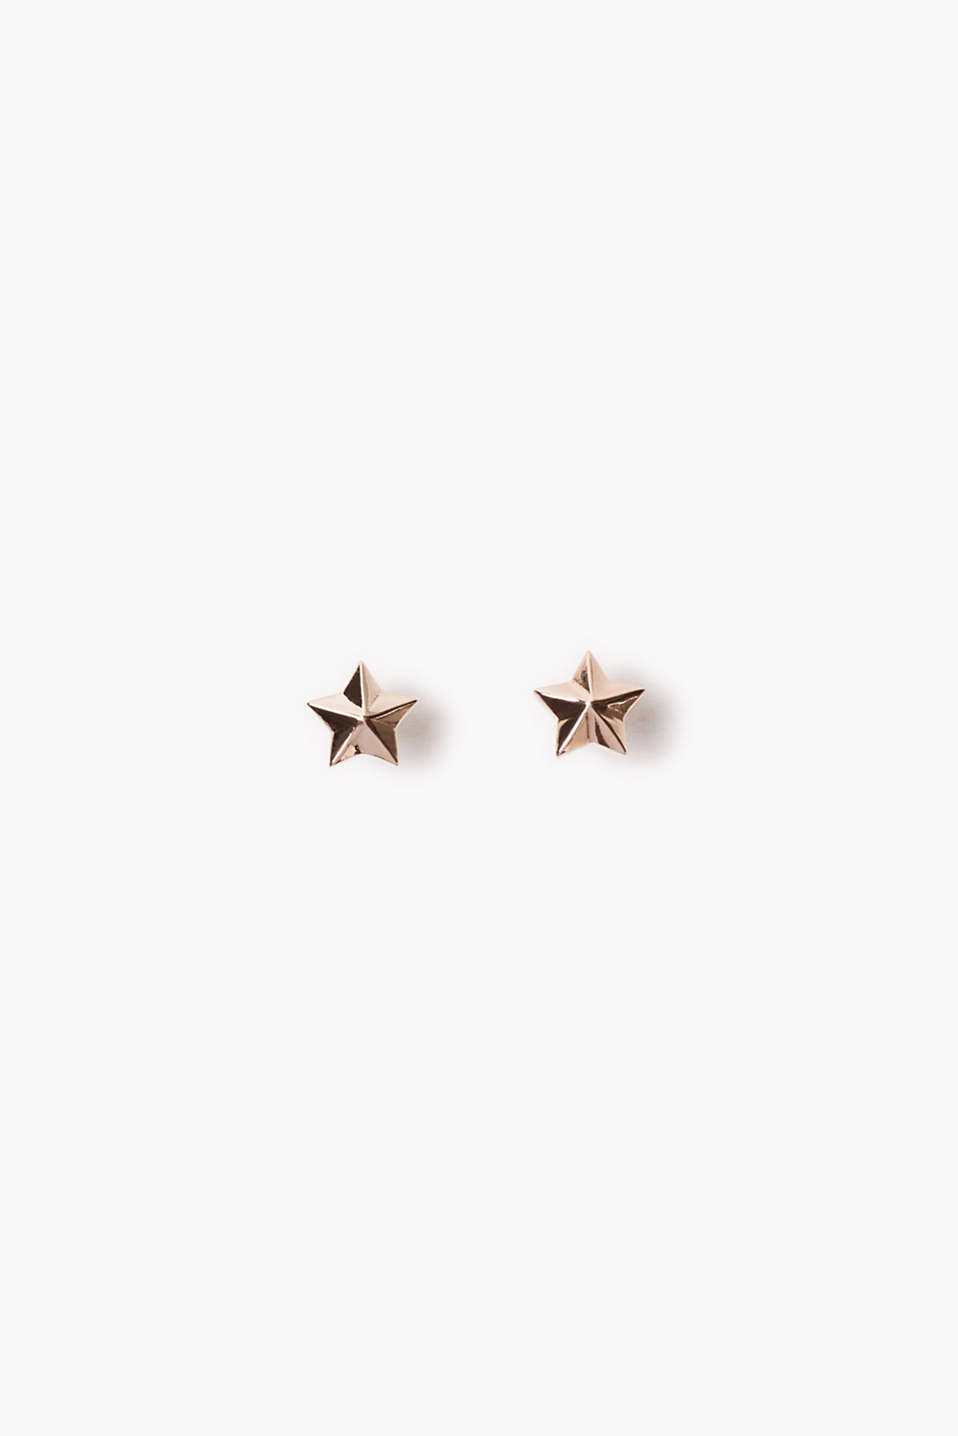 Stud earrings with small stars, diameter approx. 8 mm